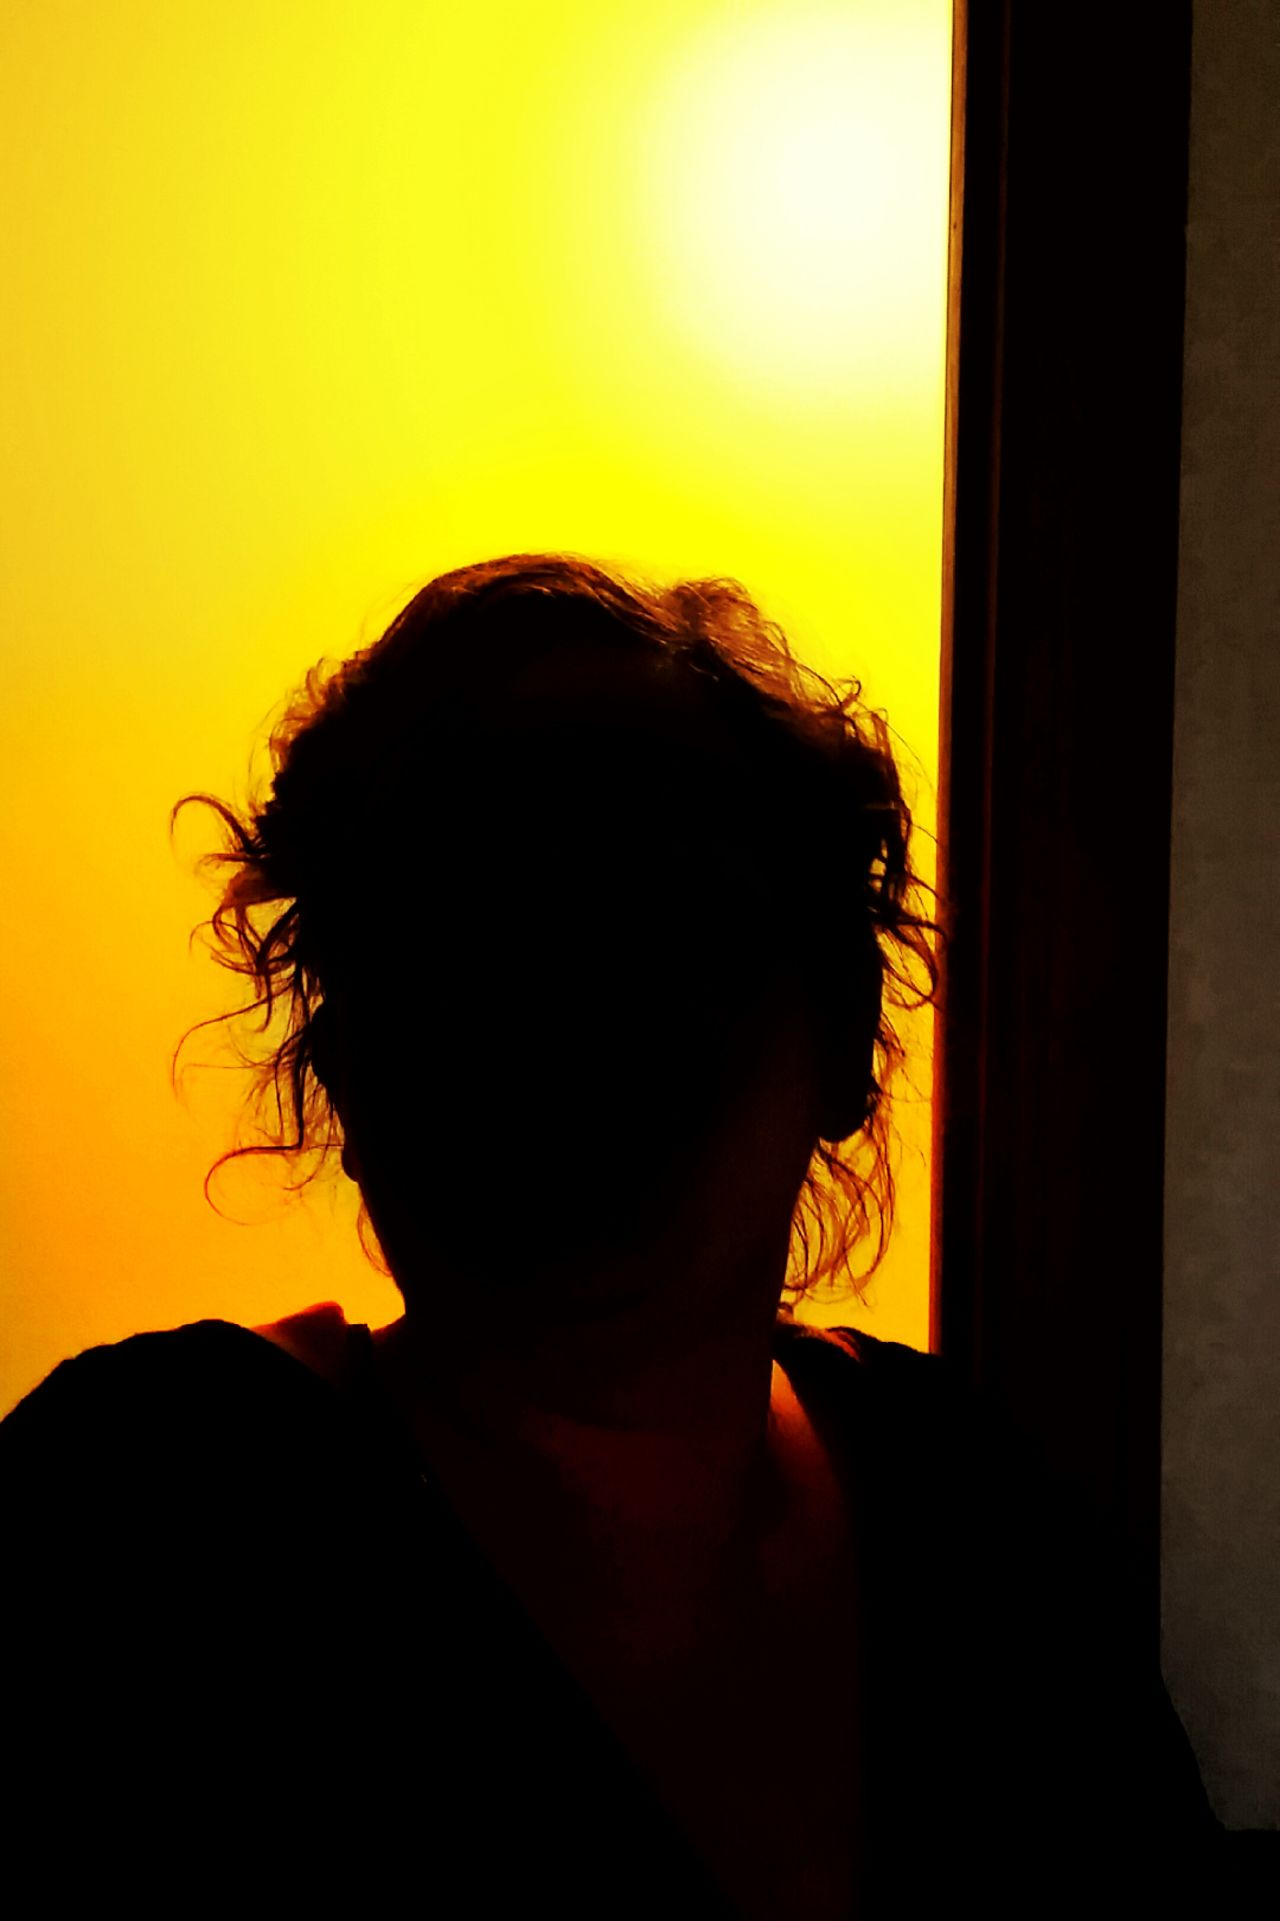 great day in the morning! Morning Early Morning Silhouette Orange Yellow Light And Shadow Darkness And Light Electric Wild Hair Hairstyles Let Your Hair Down The Portraitist - 2016 EyeEm Awards Colour Of Life Home Is Where The Art Is Pivotal Ideas Color Palette Shadowplay My Year My View